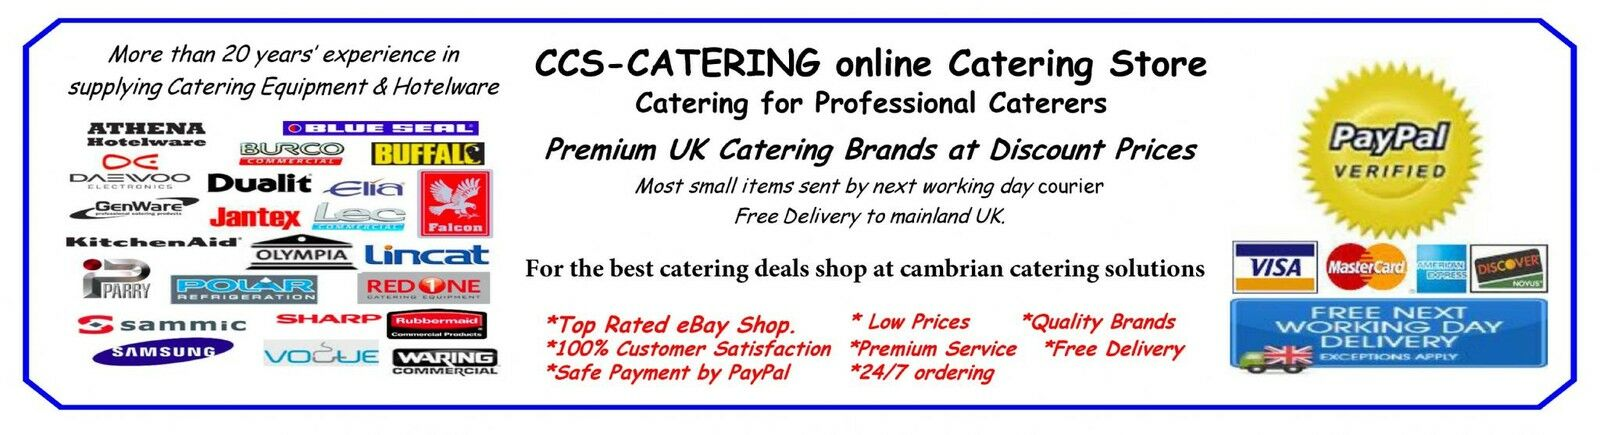 CCS-Catering